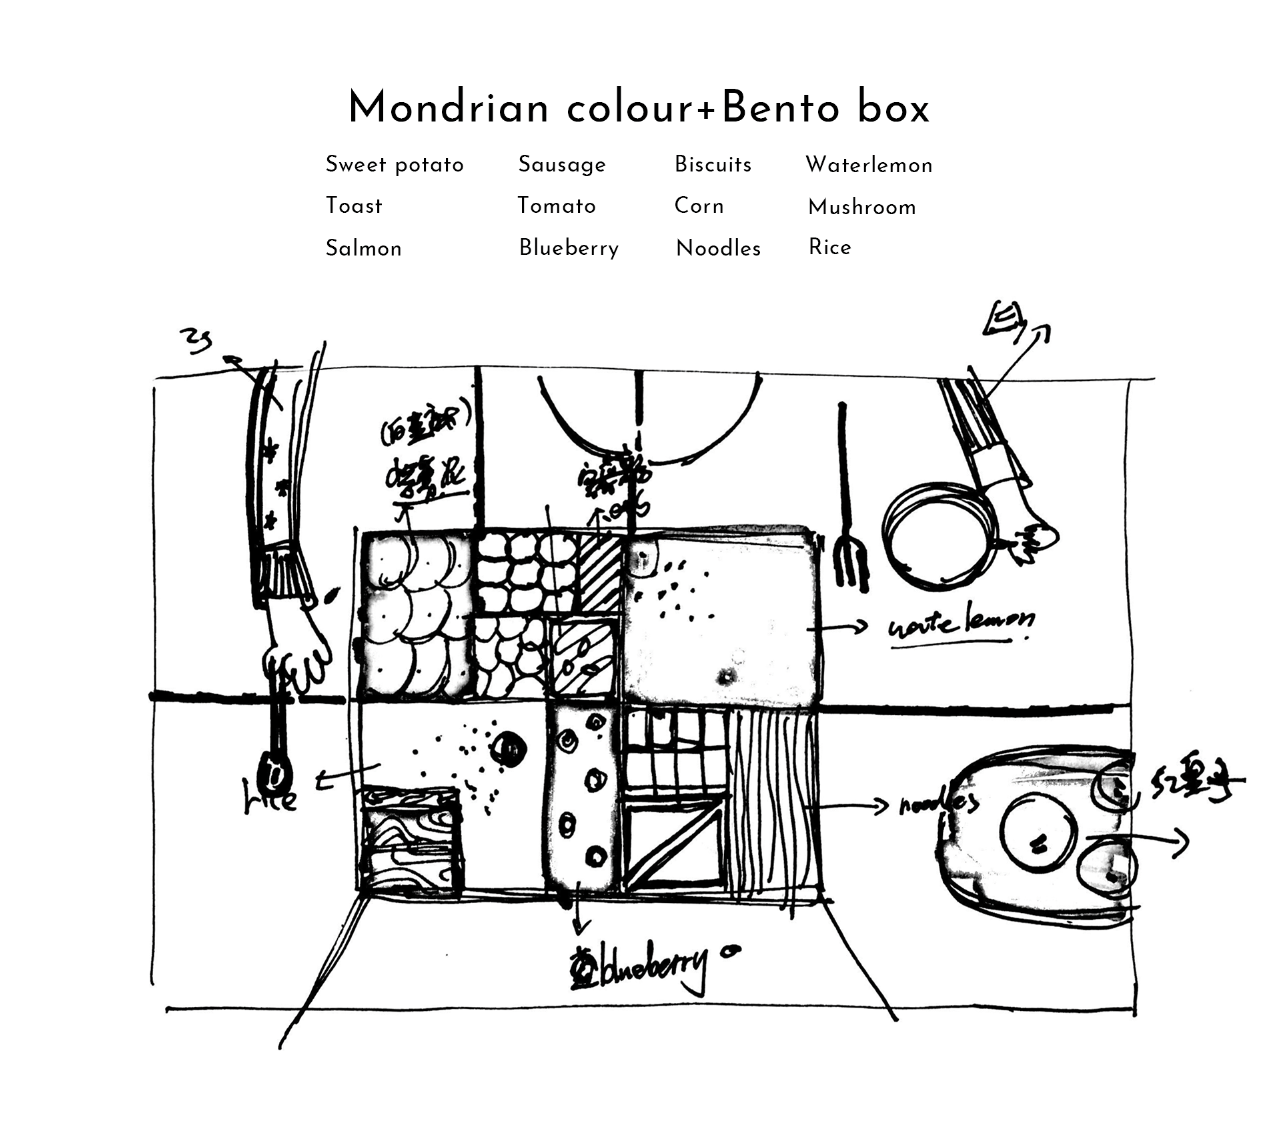 Behind the scene ink sketch preparation for creating Mondrian Bento Box